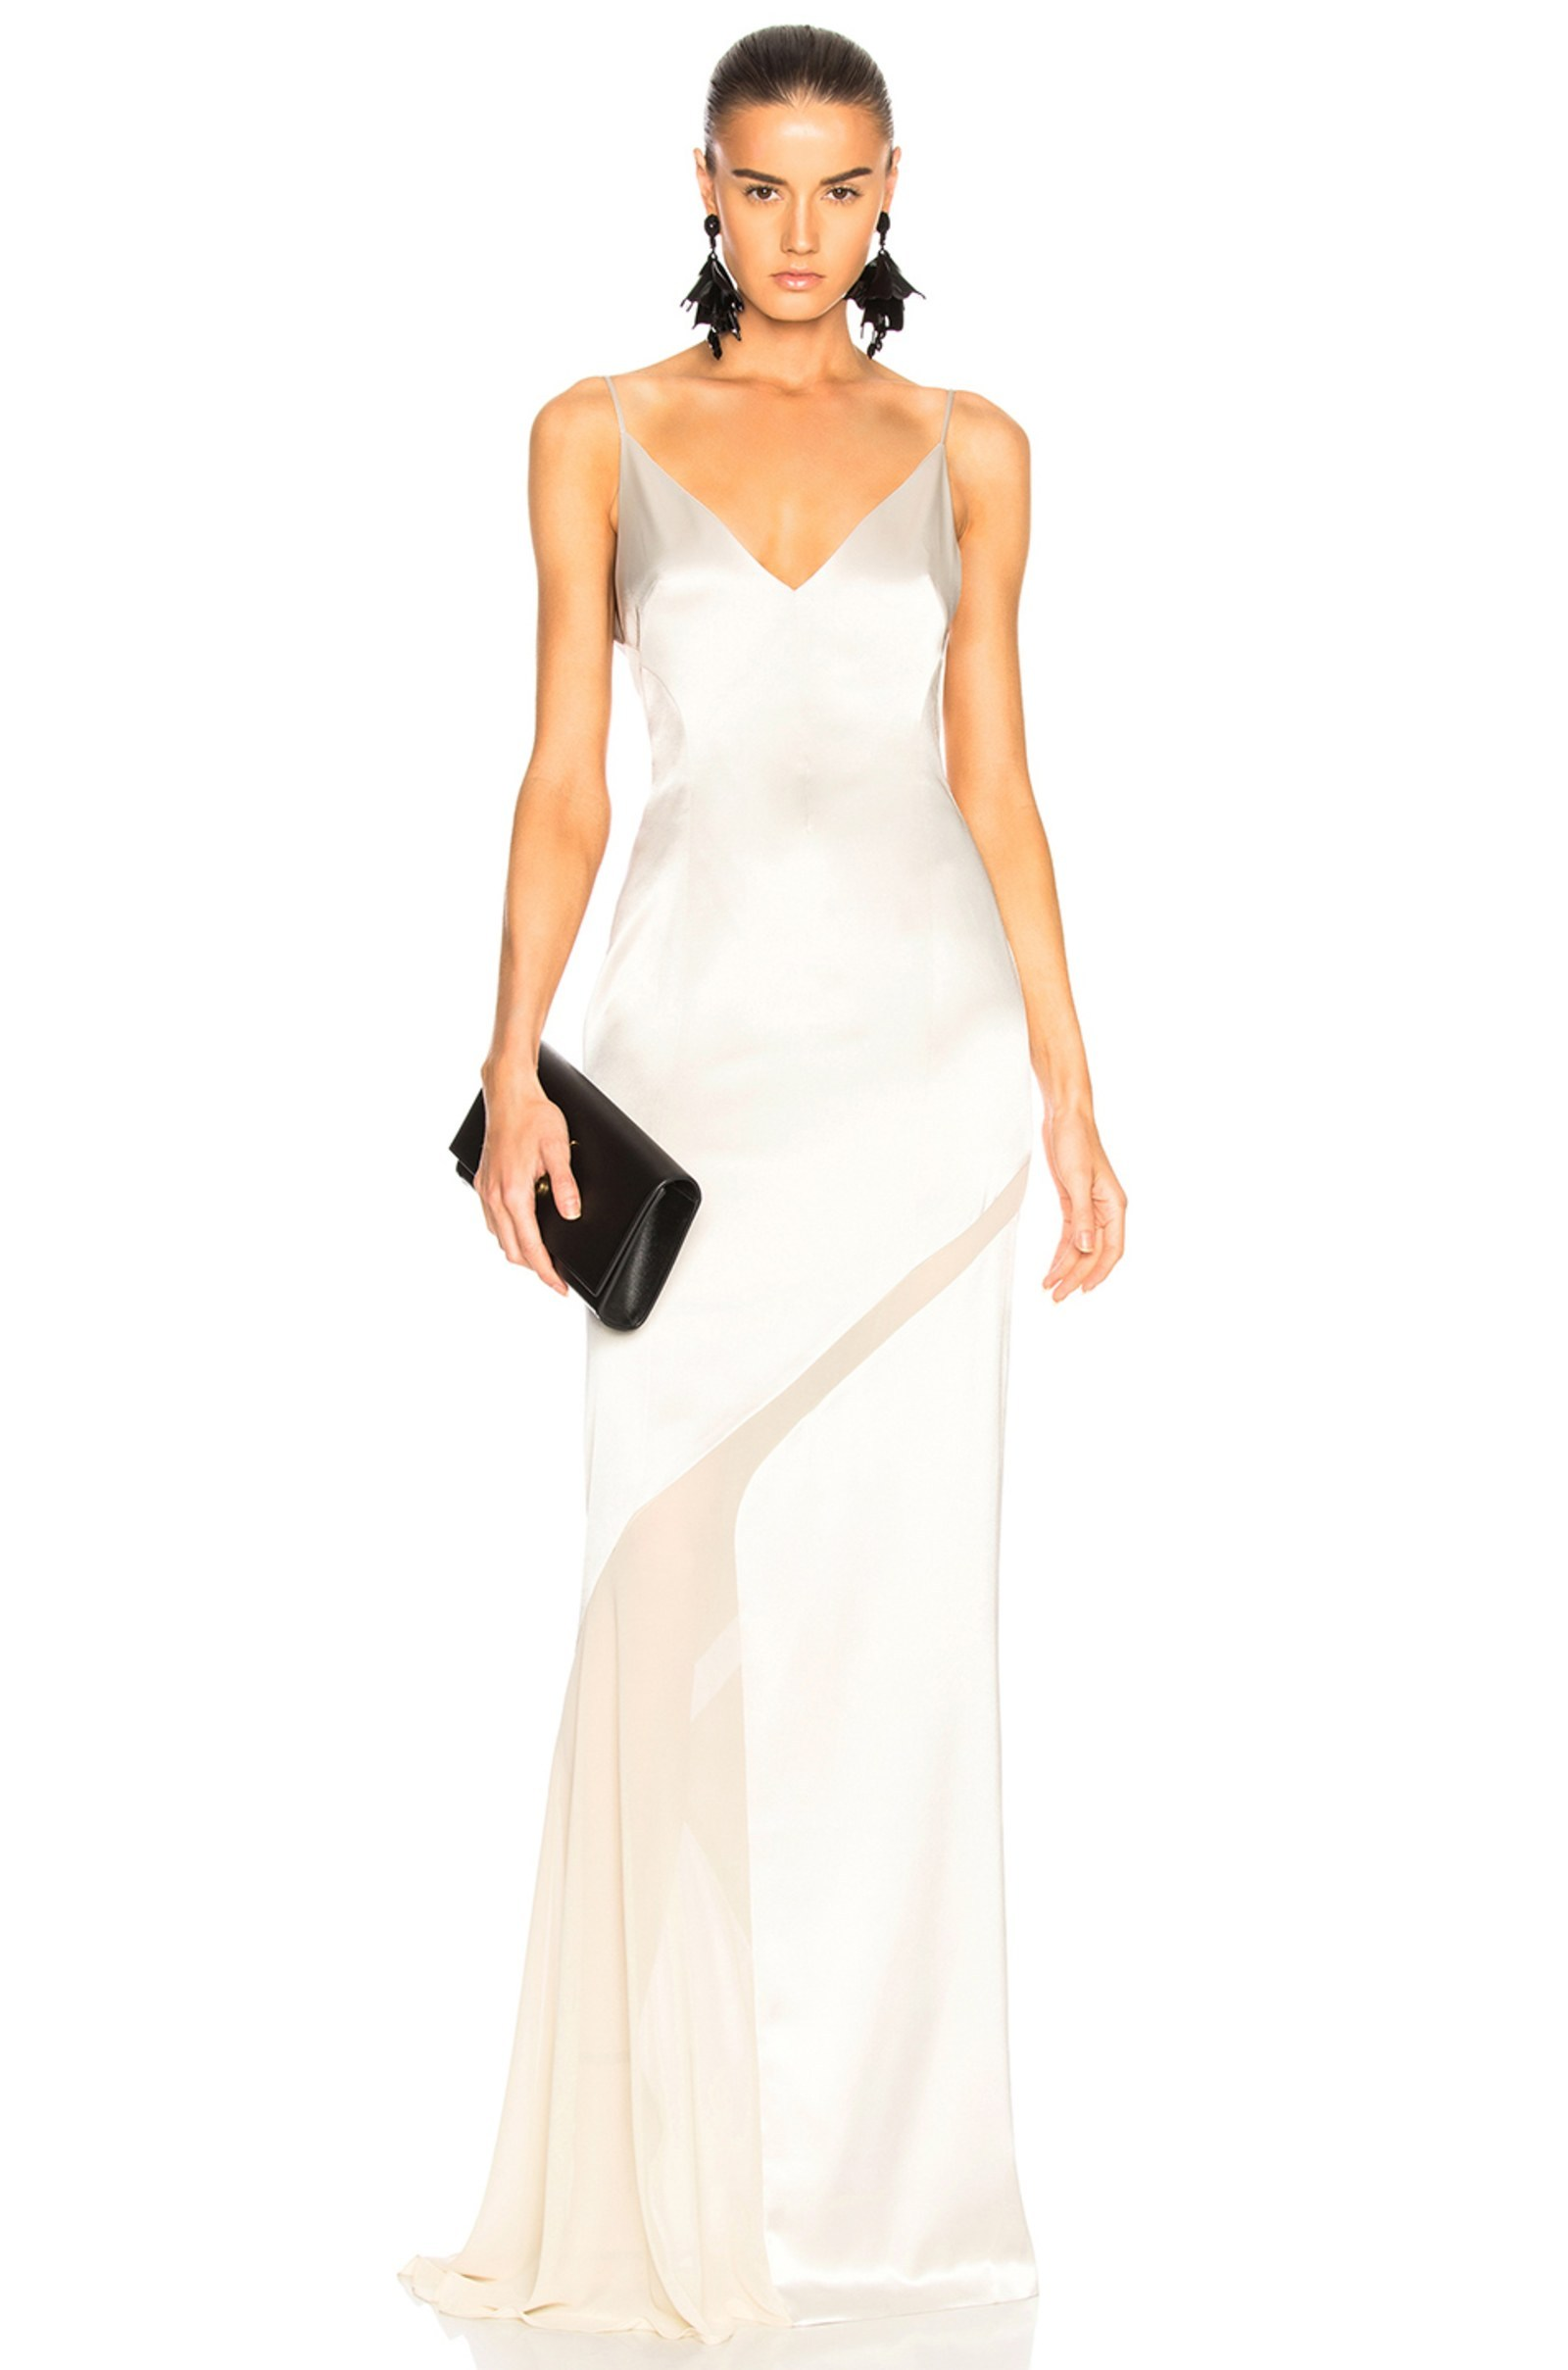 department stores that sell wedding dresses photo - 1